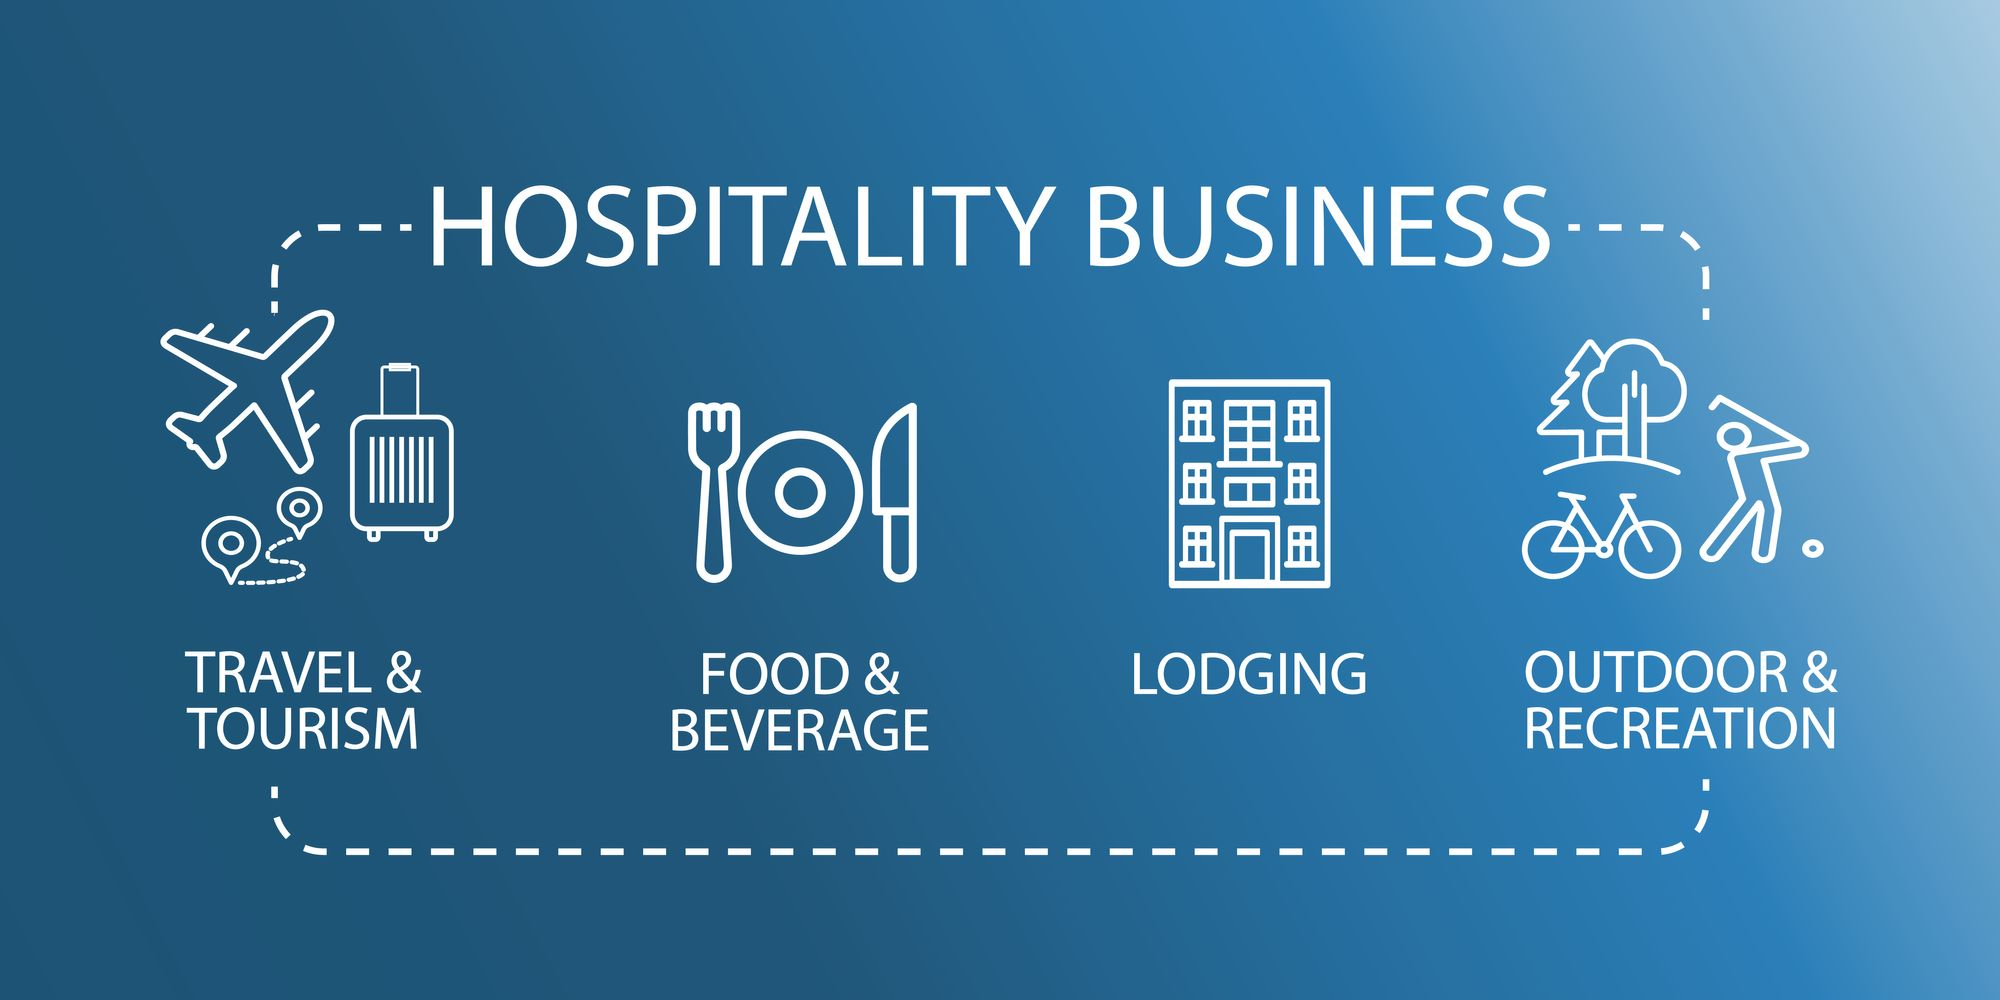 How Does The Hospitality Industry Work?